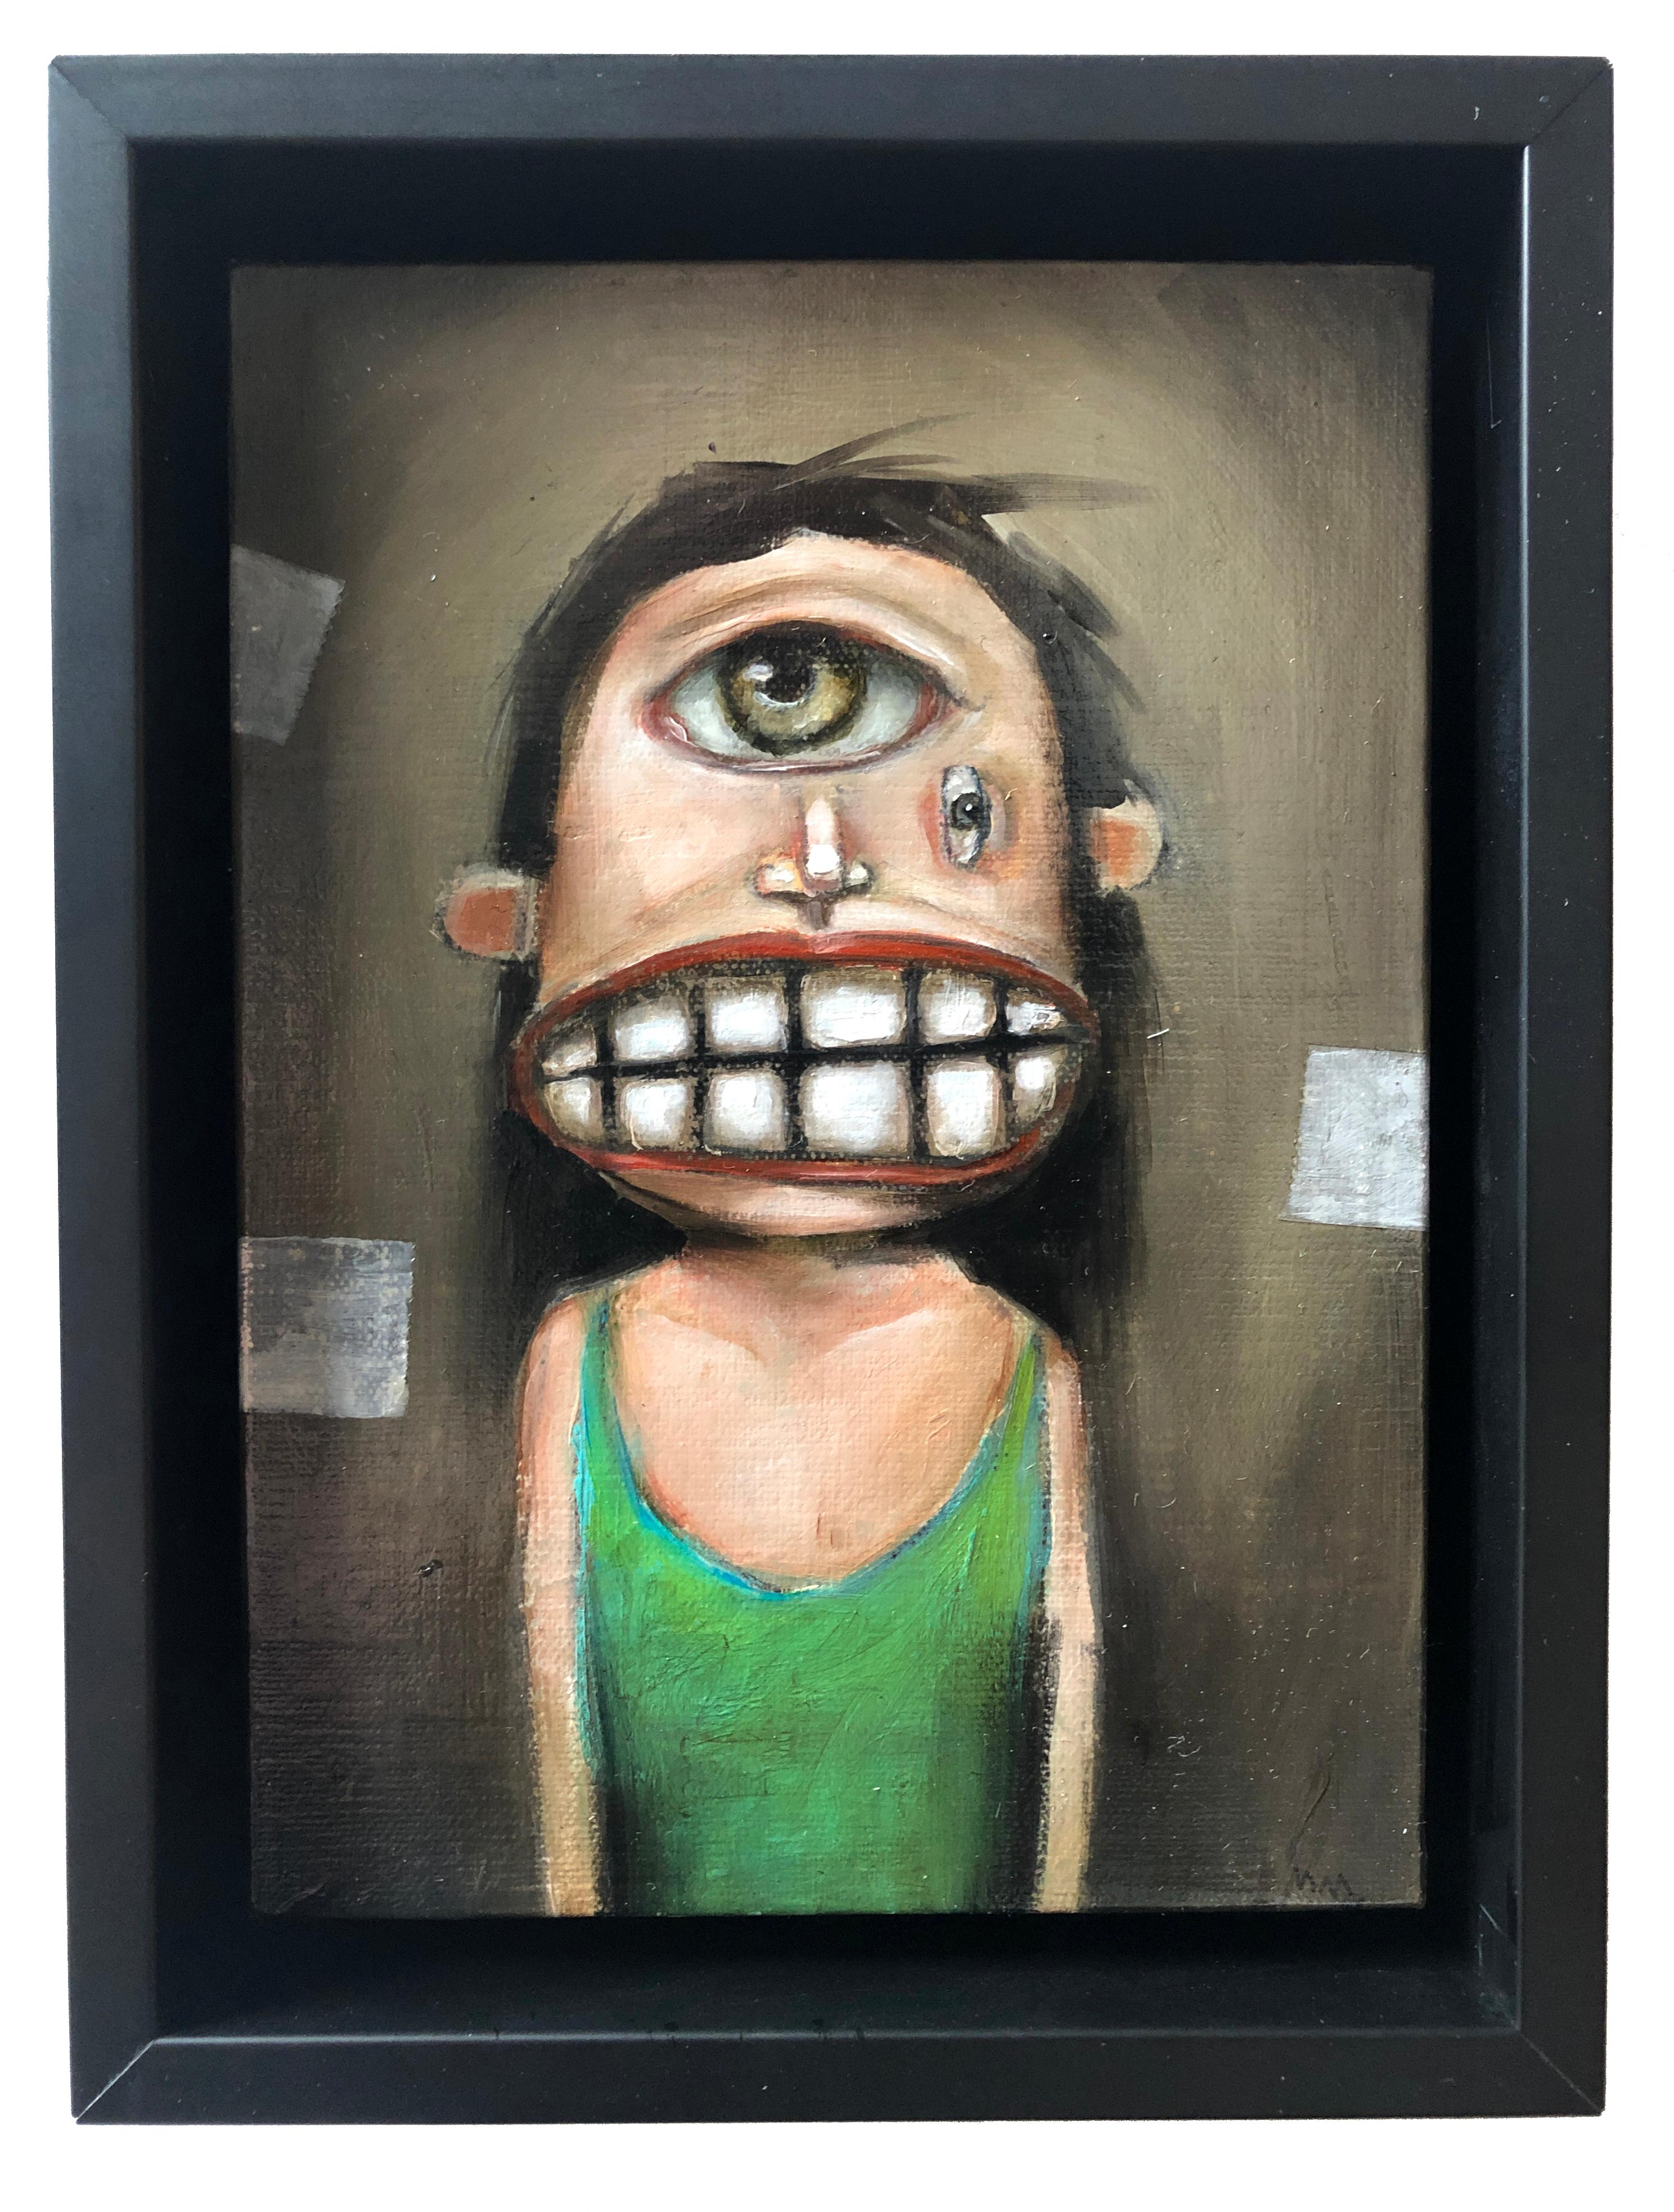 The Flounder, Michele Mikesell, pop-surreal figurative oil painting, framed